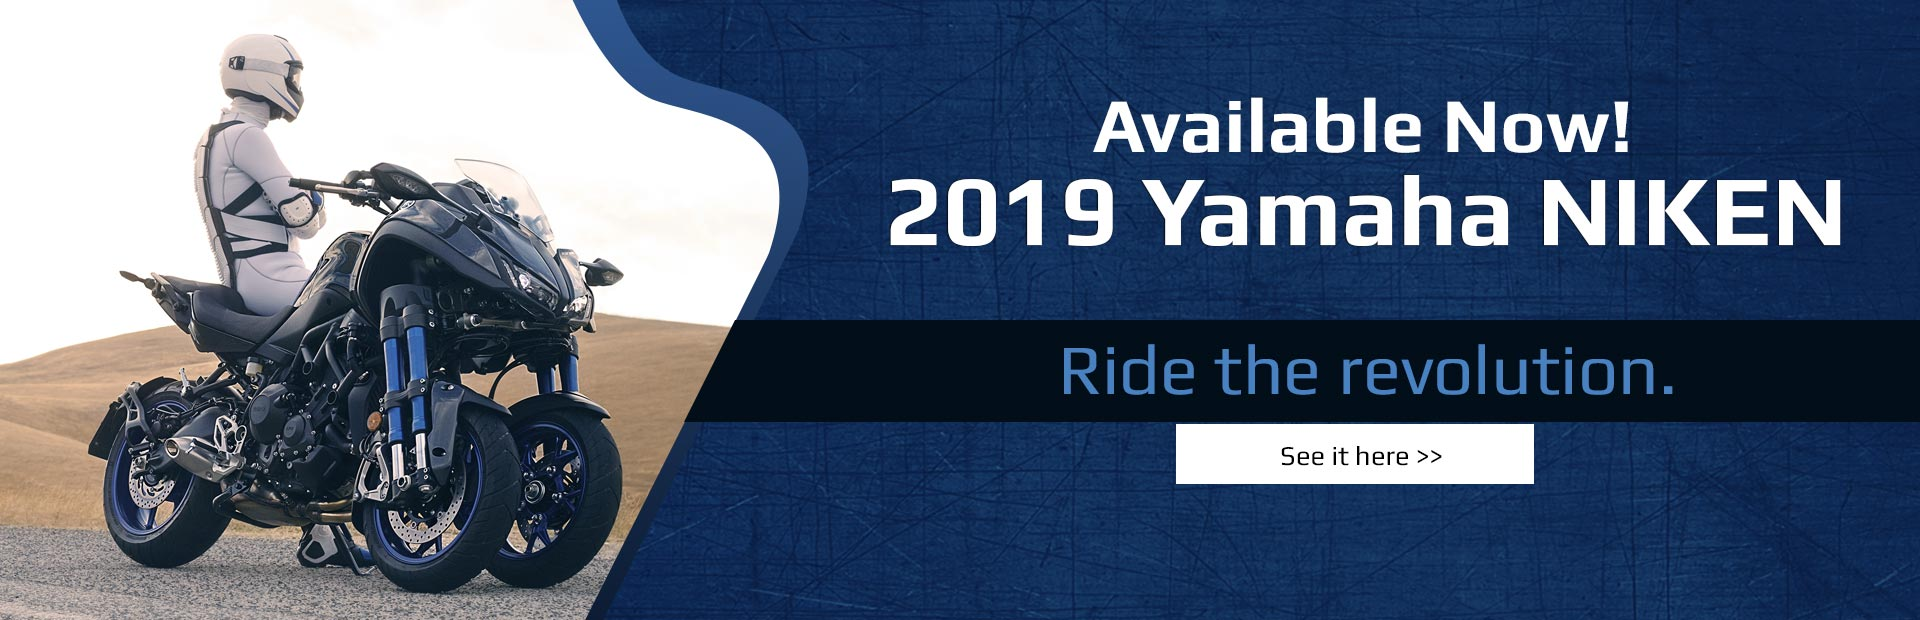 The 2019 Yamaha NIKEN is available now!